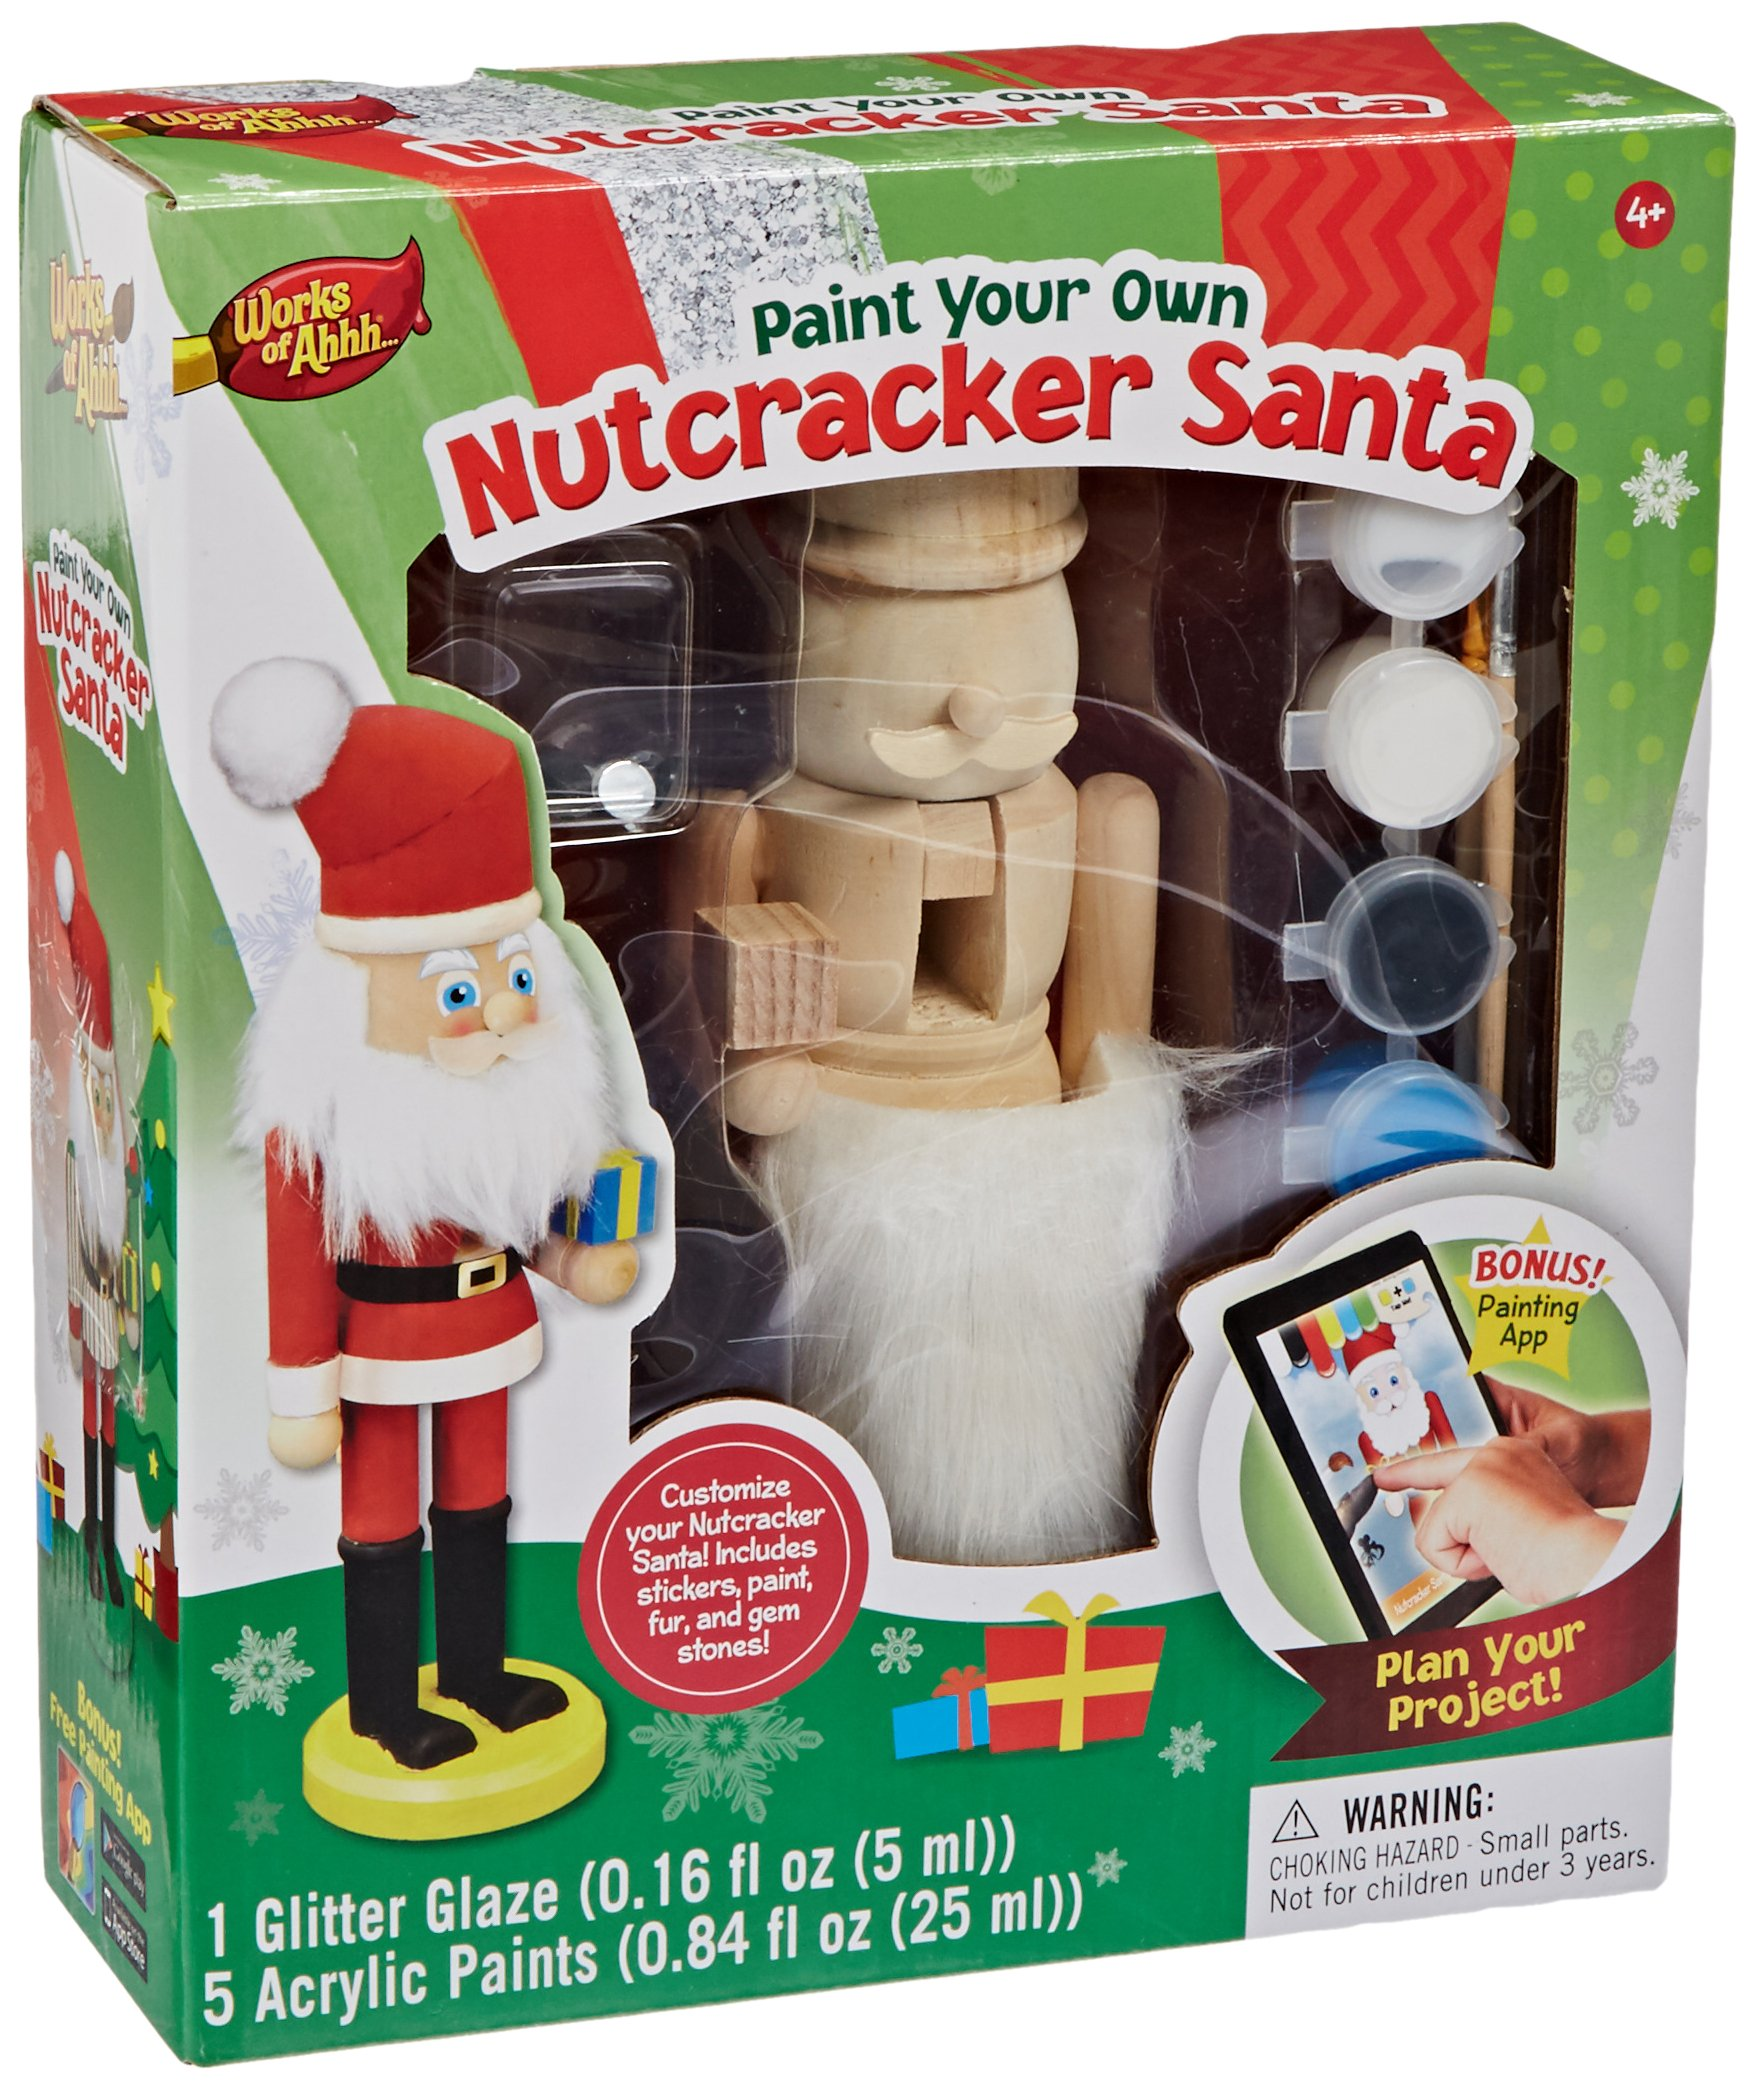 MasterPieces Works of Ahhh Nutcracker Santa Large Wood Paint Kit by MasterPieces